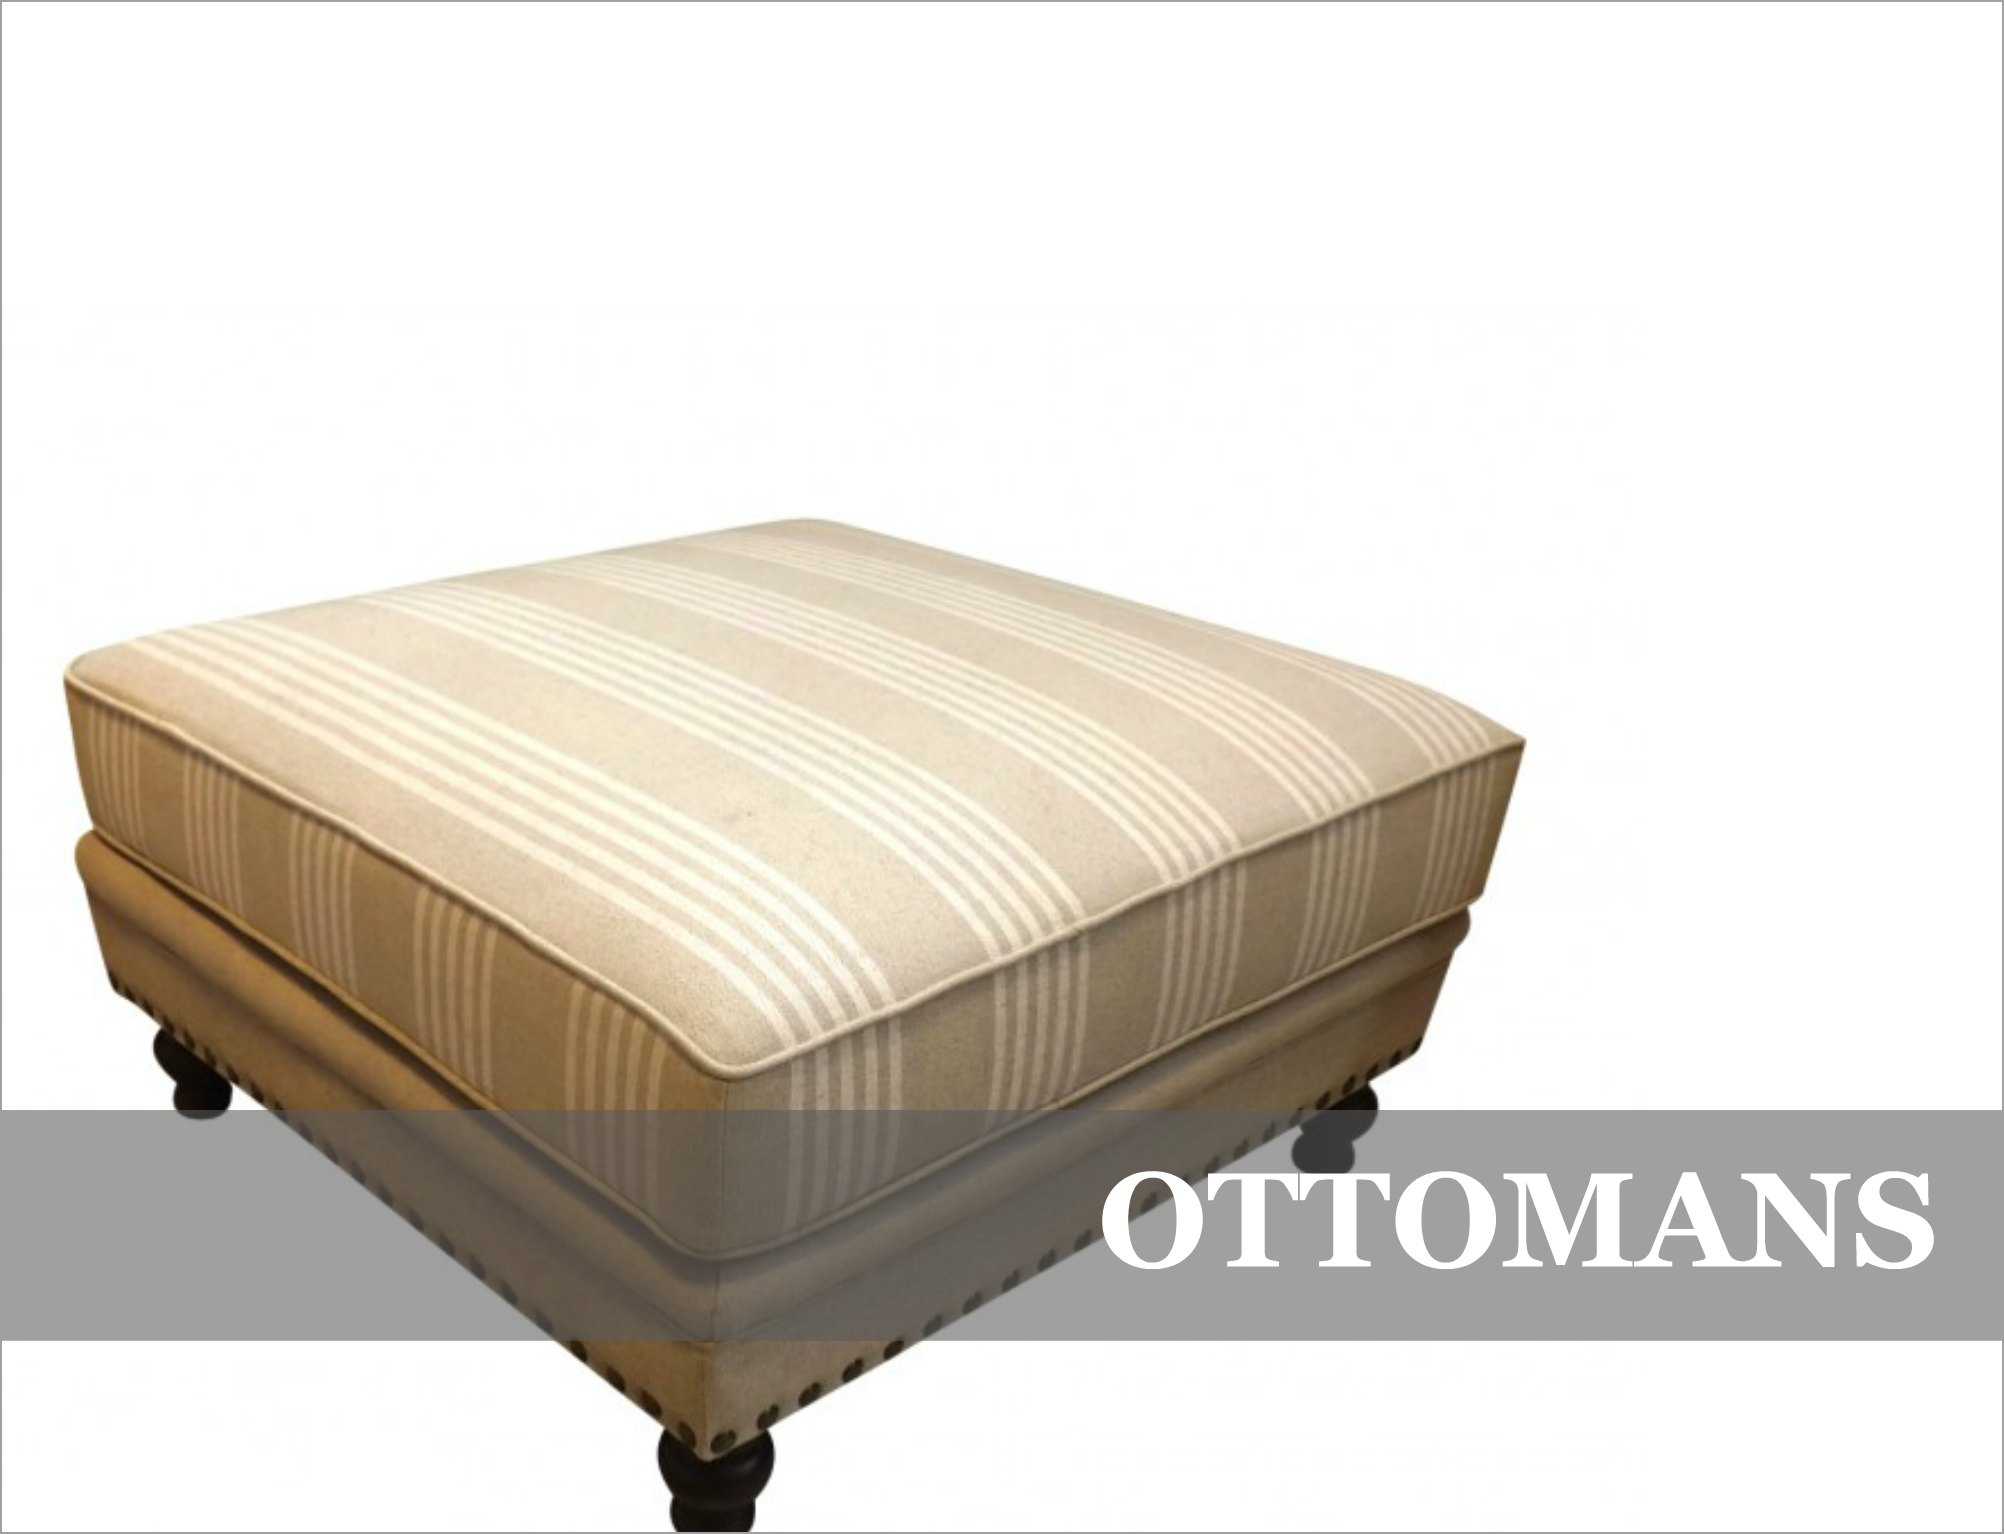 French Provincial English Ottomans